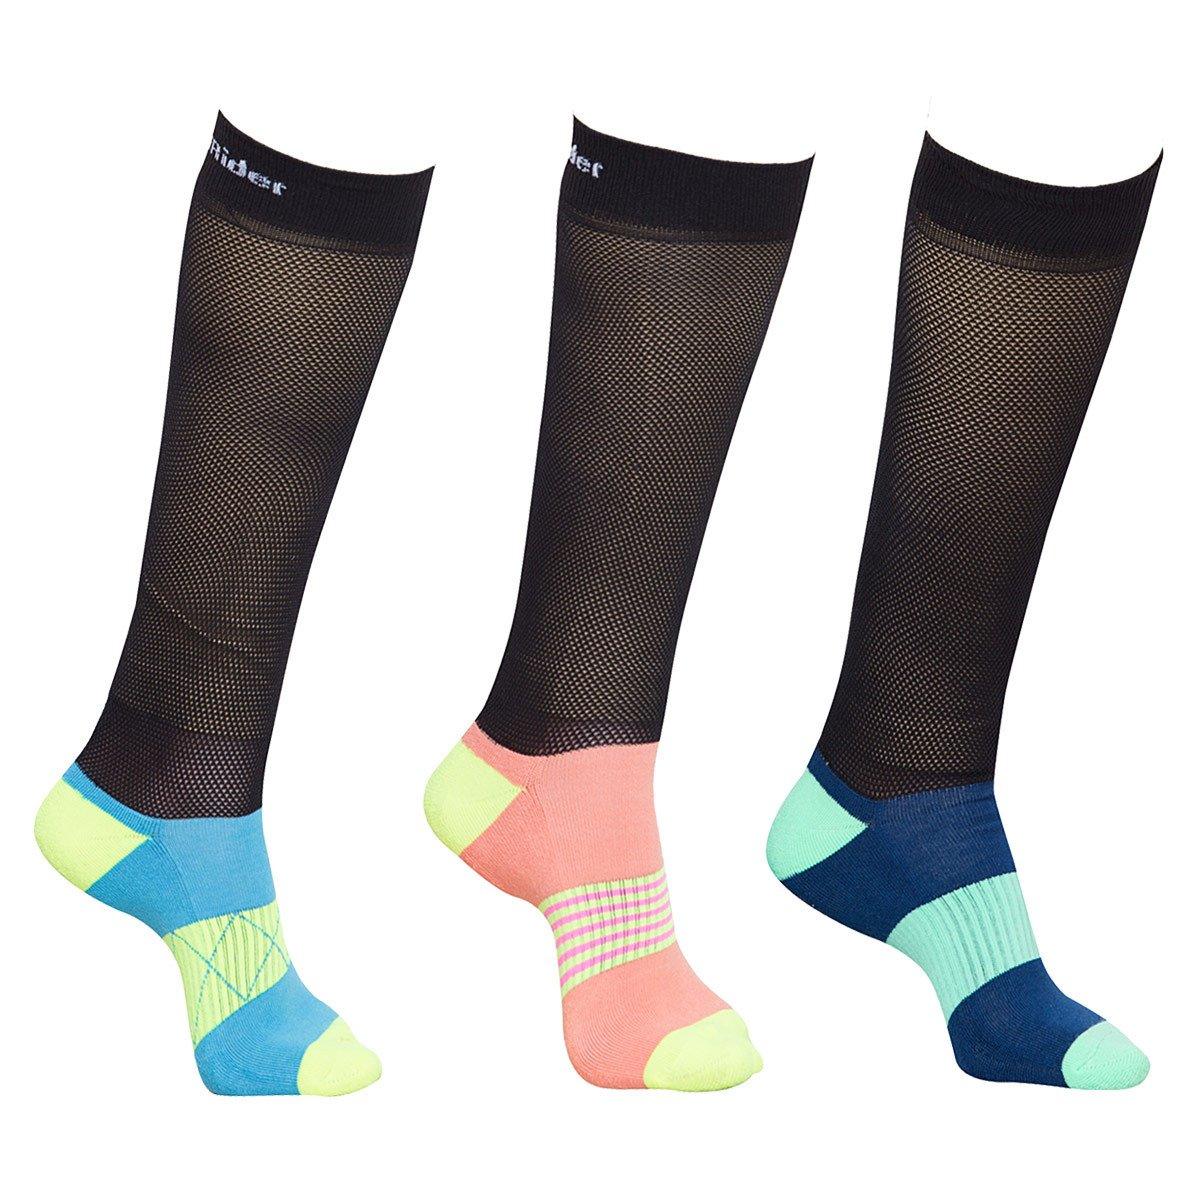 EquiCool Ventilated Riding Socks-3 pack - TuffRider - Breeches.com